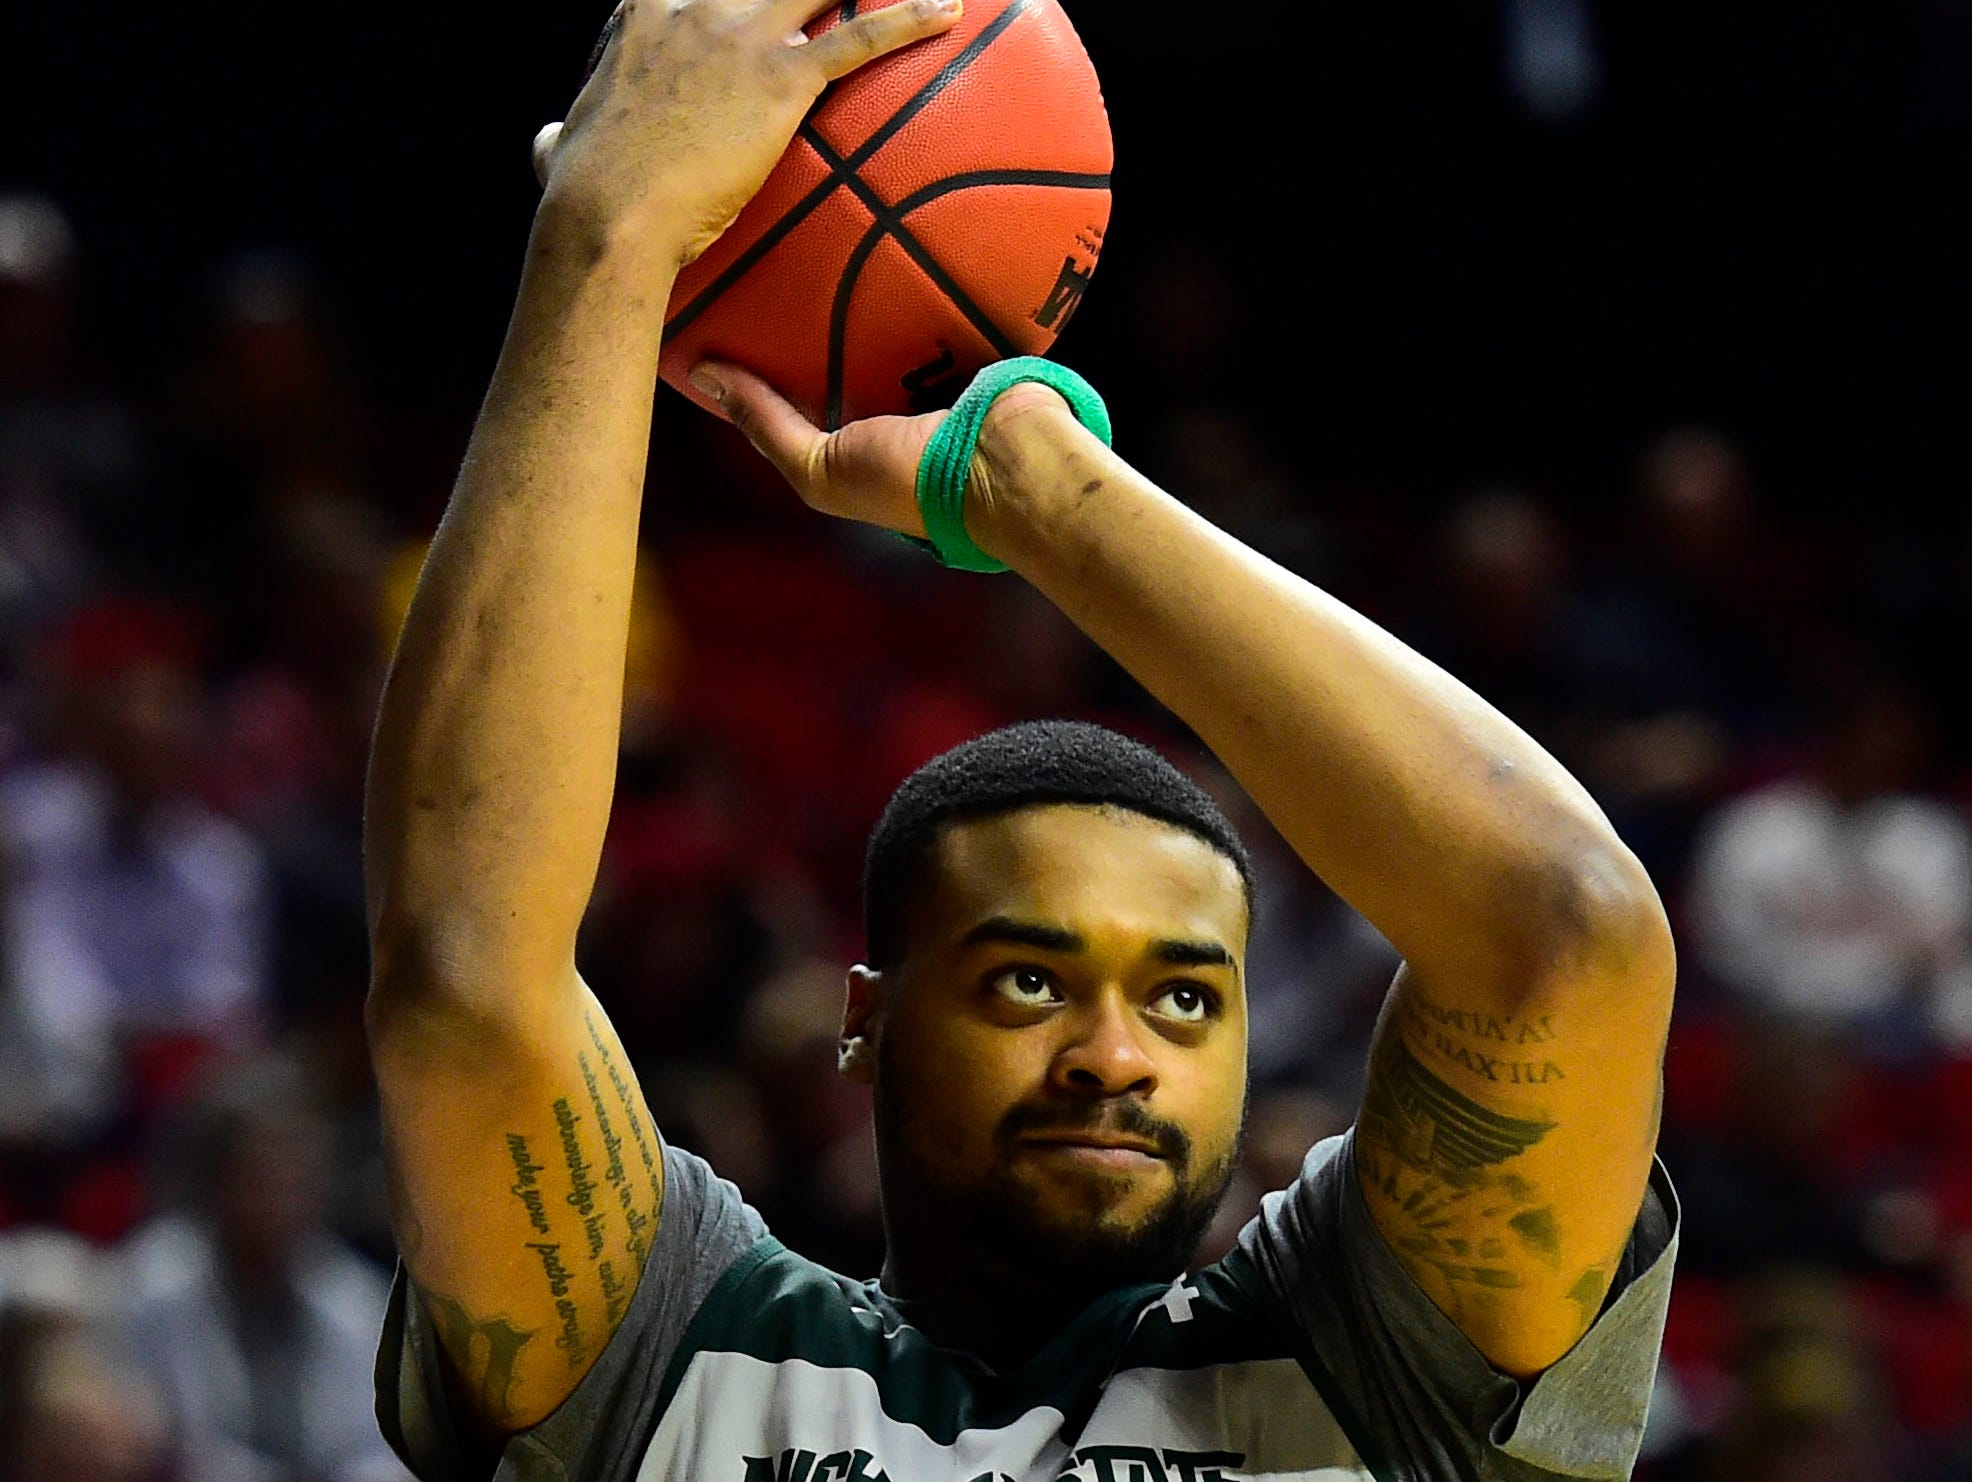 Mar 20, 2019; Des Moines, IA, USA; Michigan State Spartans forward Nick Ward (44) during practice before the first round of the 2019 NCAA Tournament at Wells Fargo Arena. Mandatory Credit: Jeffery Becker-USA TODAY Sports